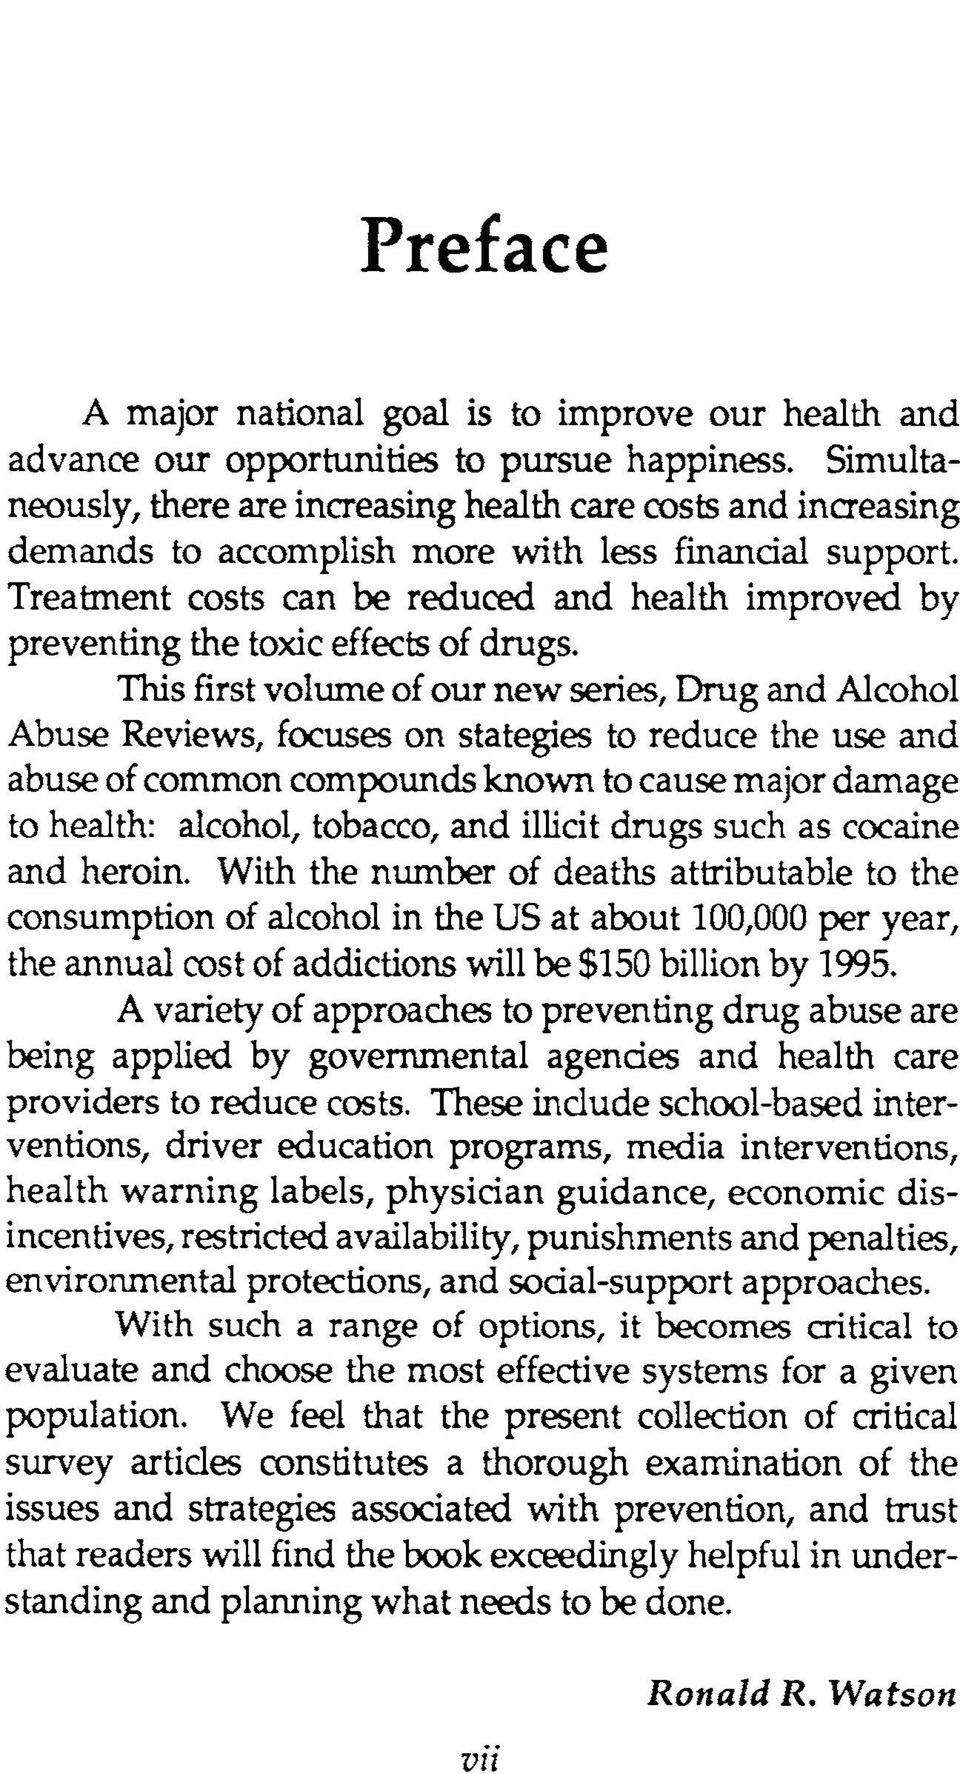 Treatment costs can be reduced and health improved by preventing the toxic effects of drugs.